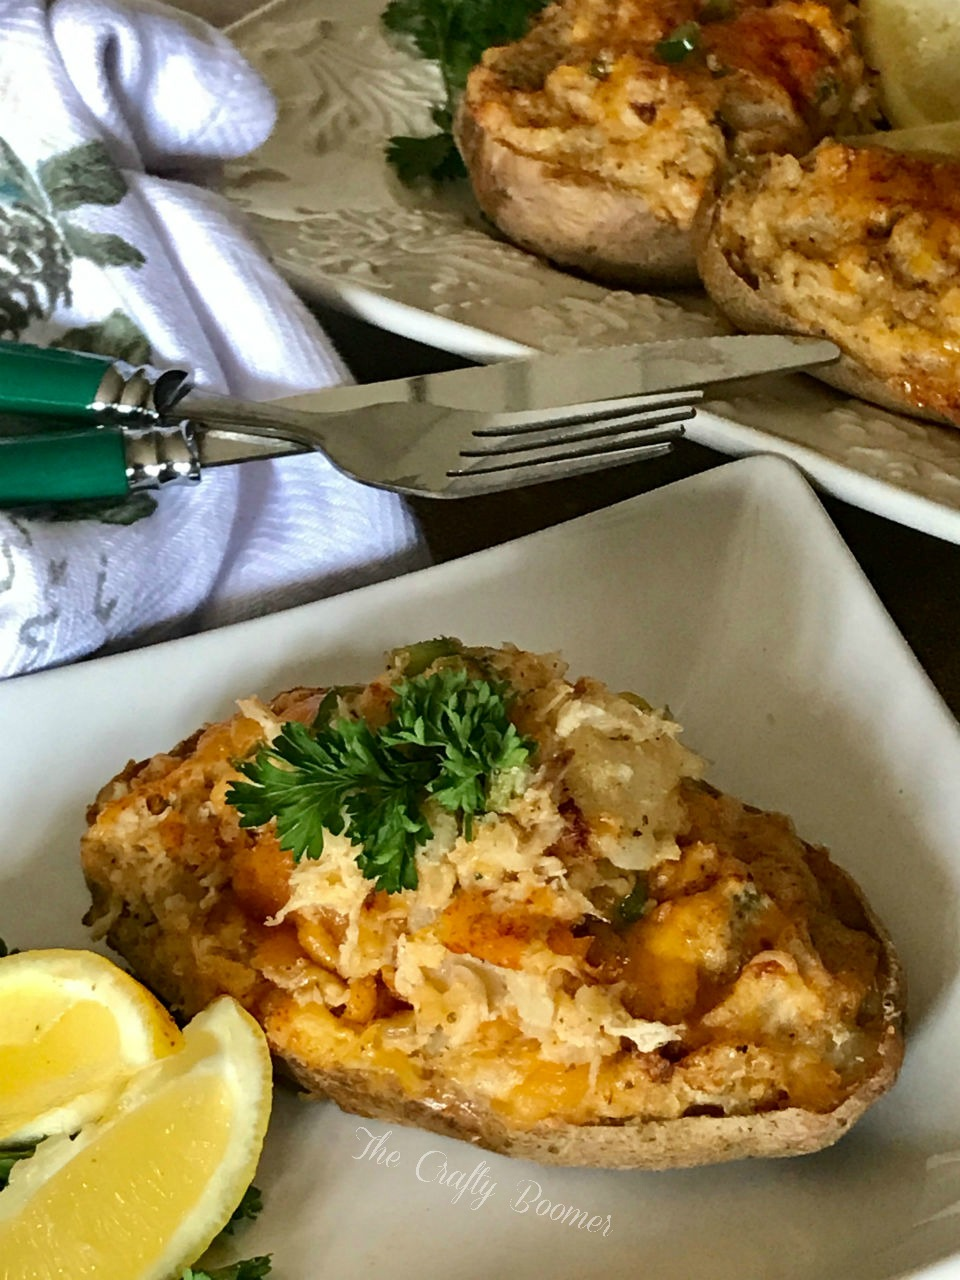 Crab Imperial Stuffed Potatoes The Crafty Boomer